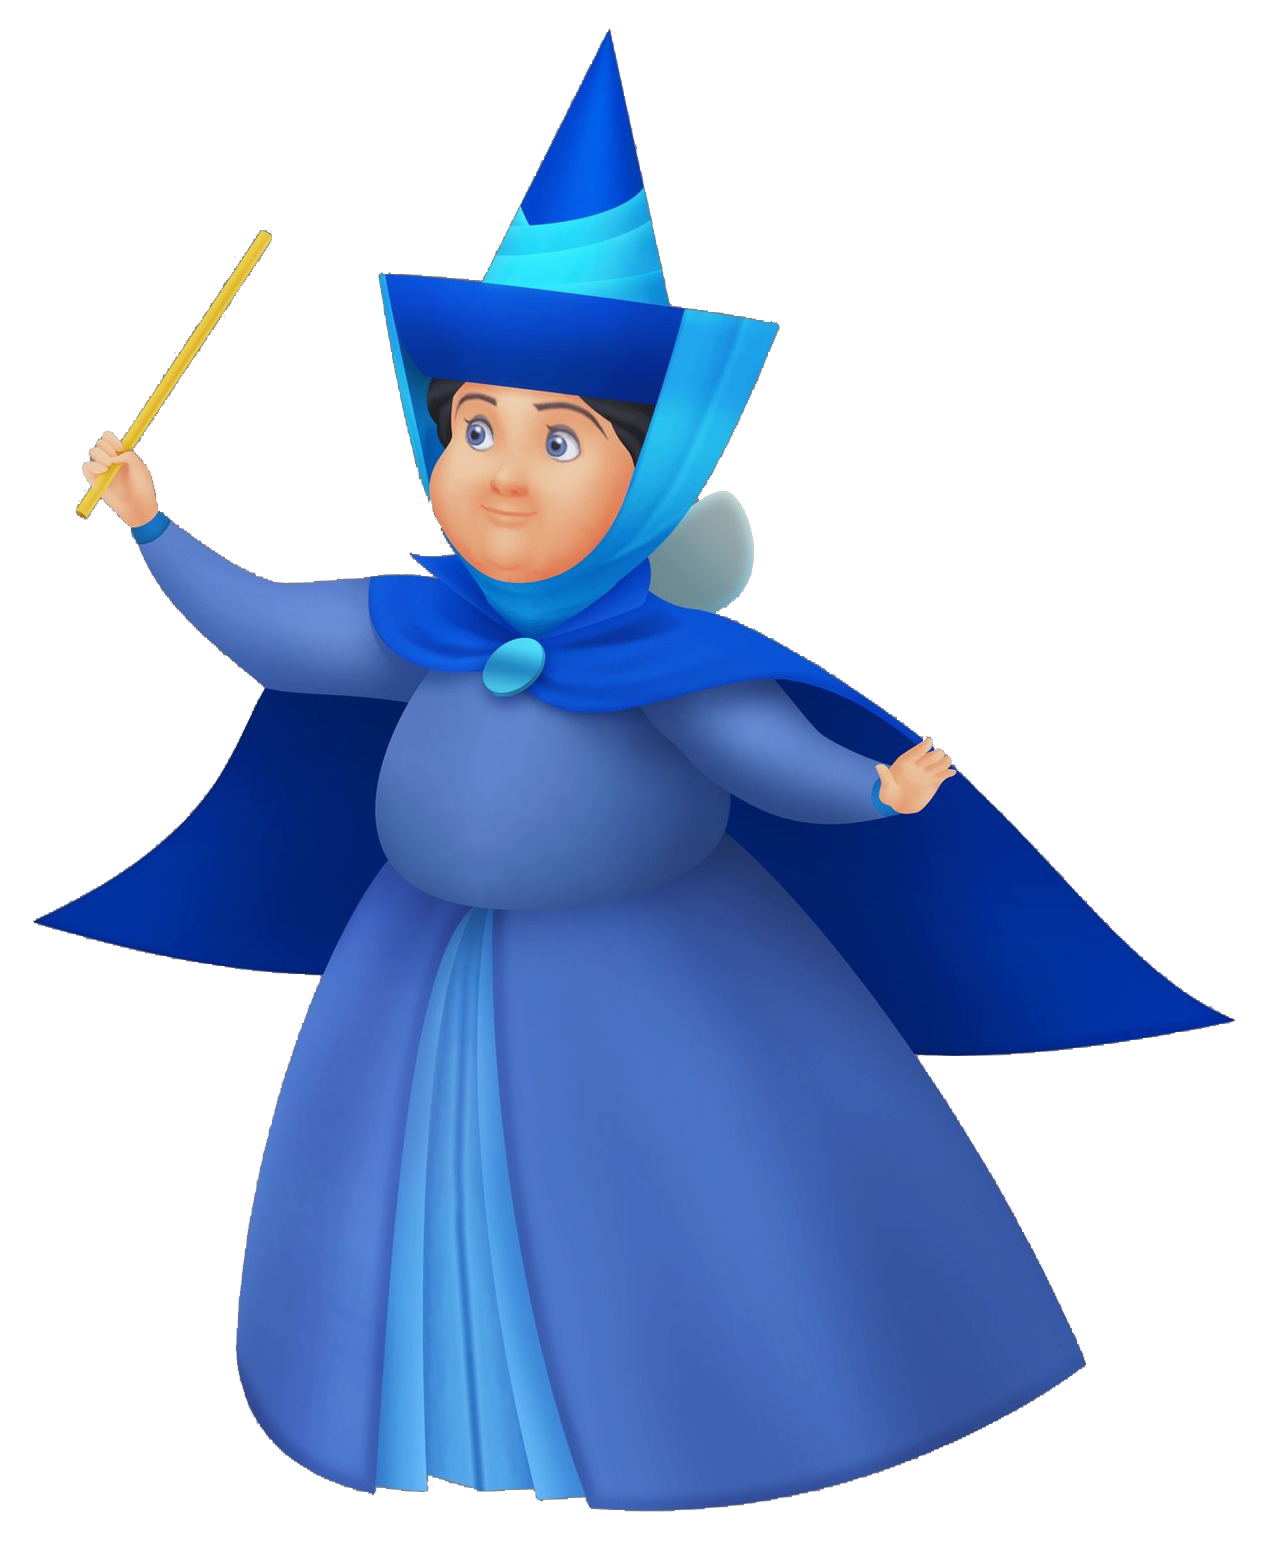 Sleeping beauty characters google. Costume clipart story character